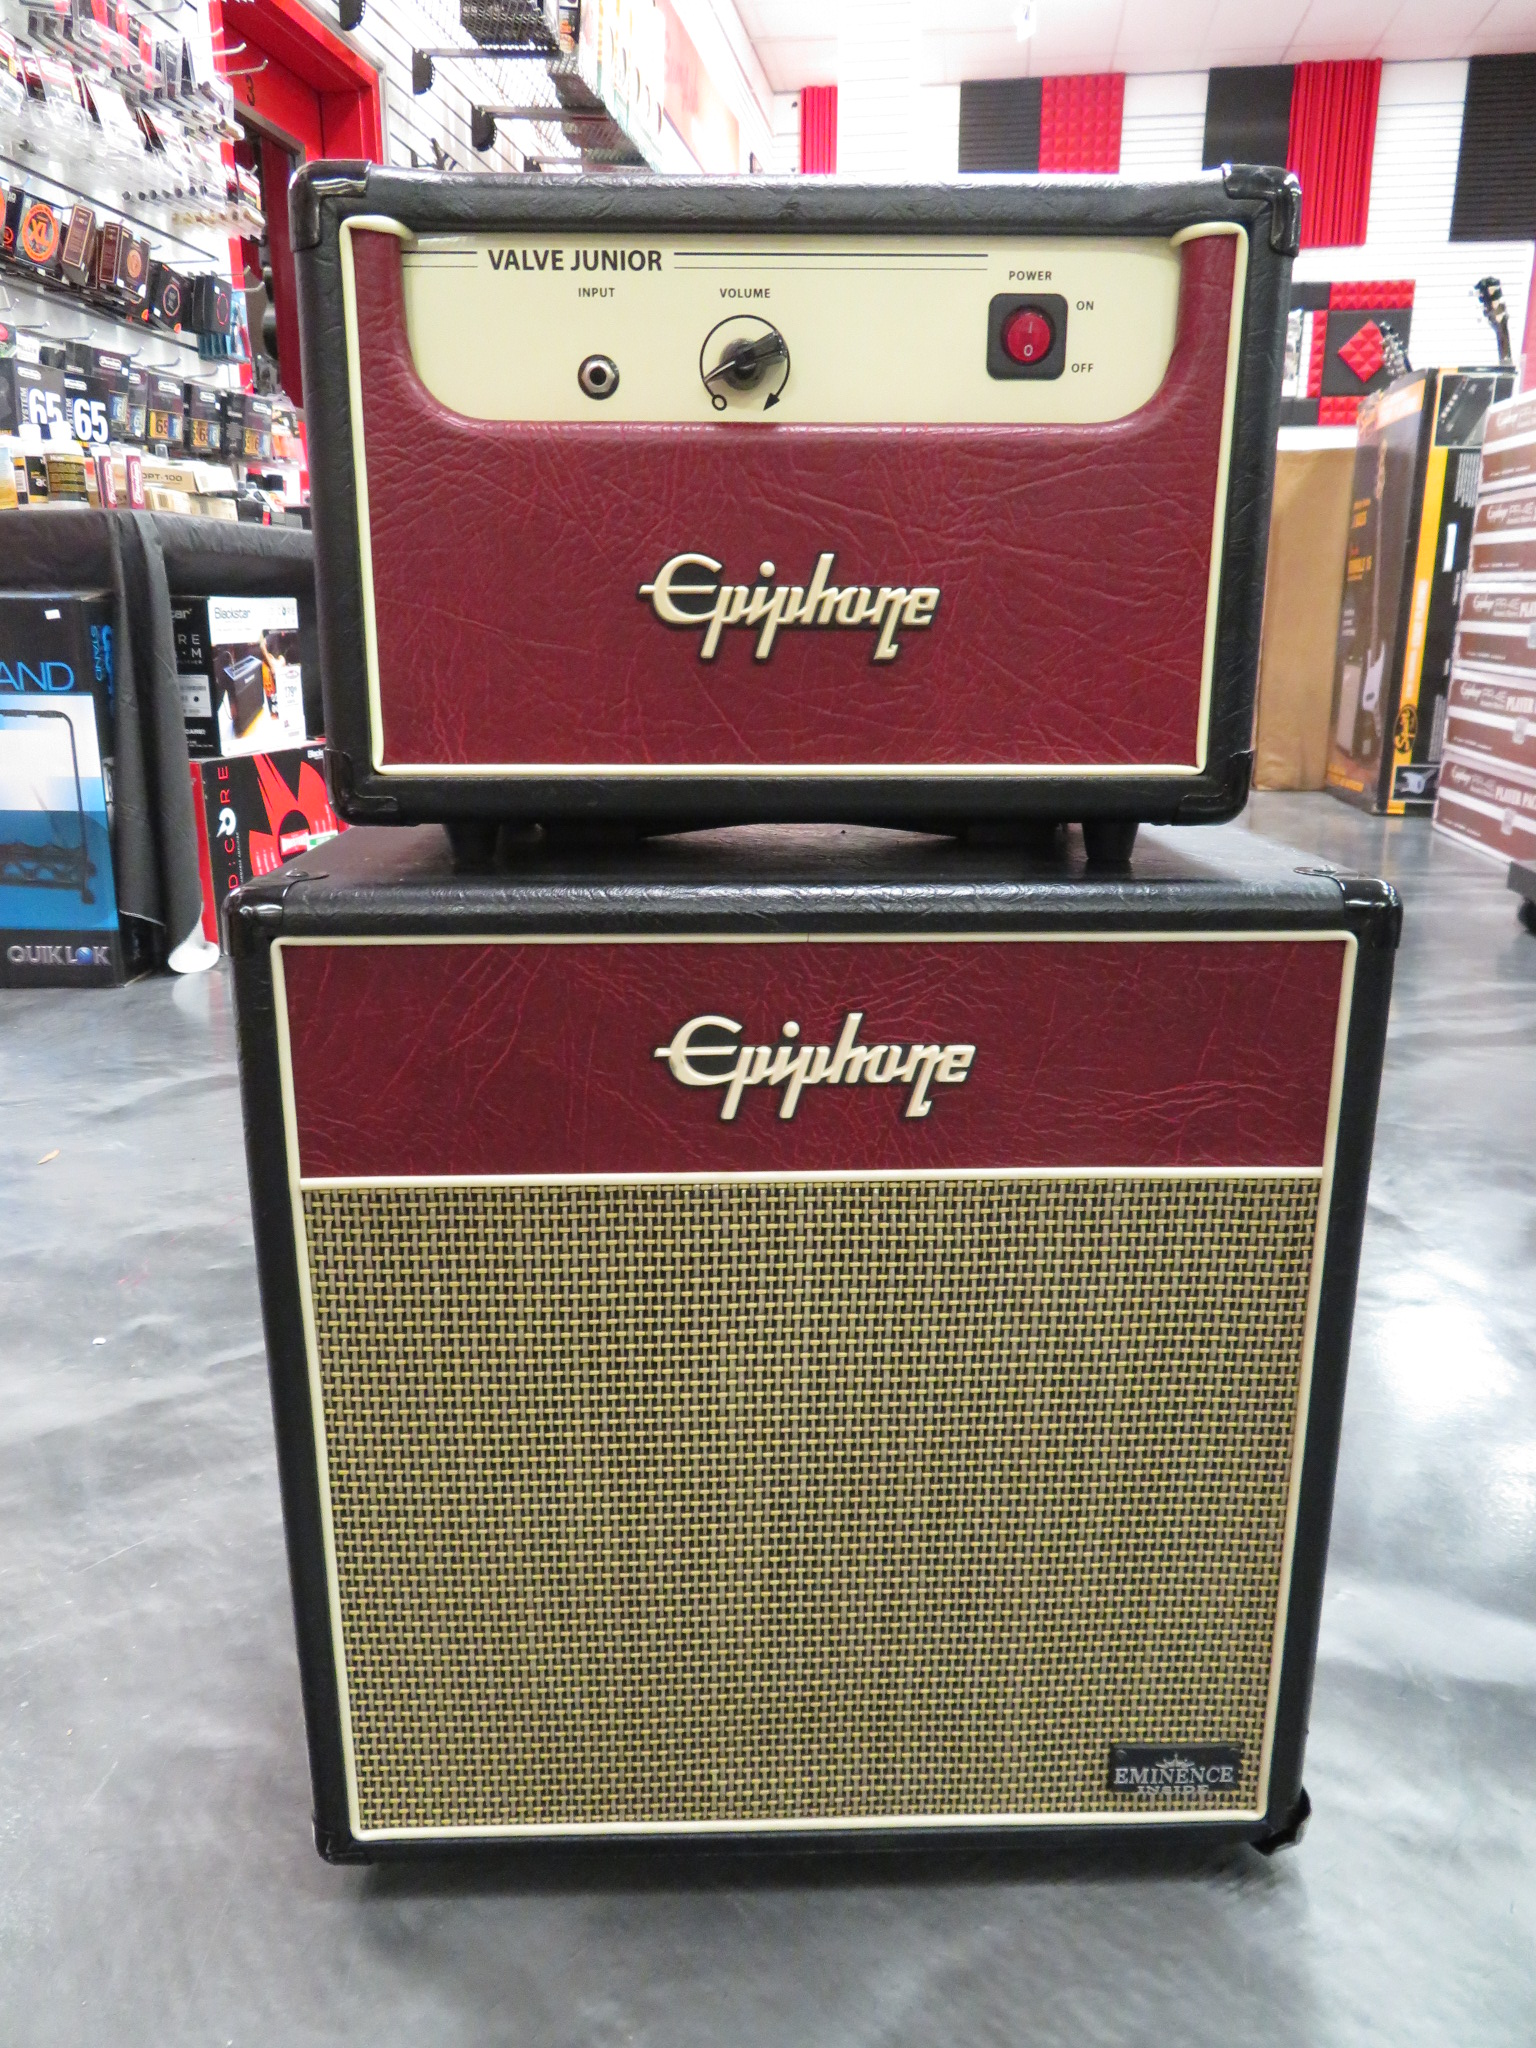 Epiphone - Valve Jr. Head and Matching Cab